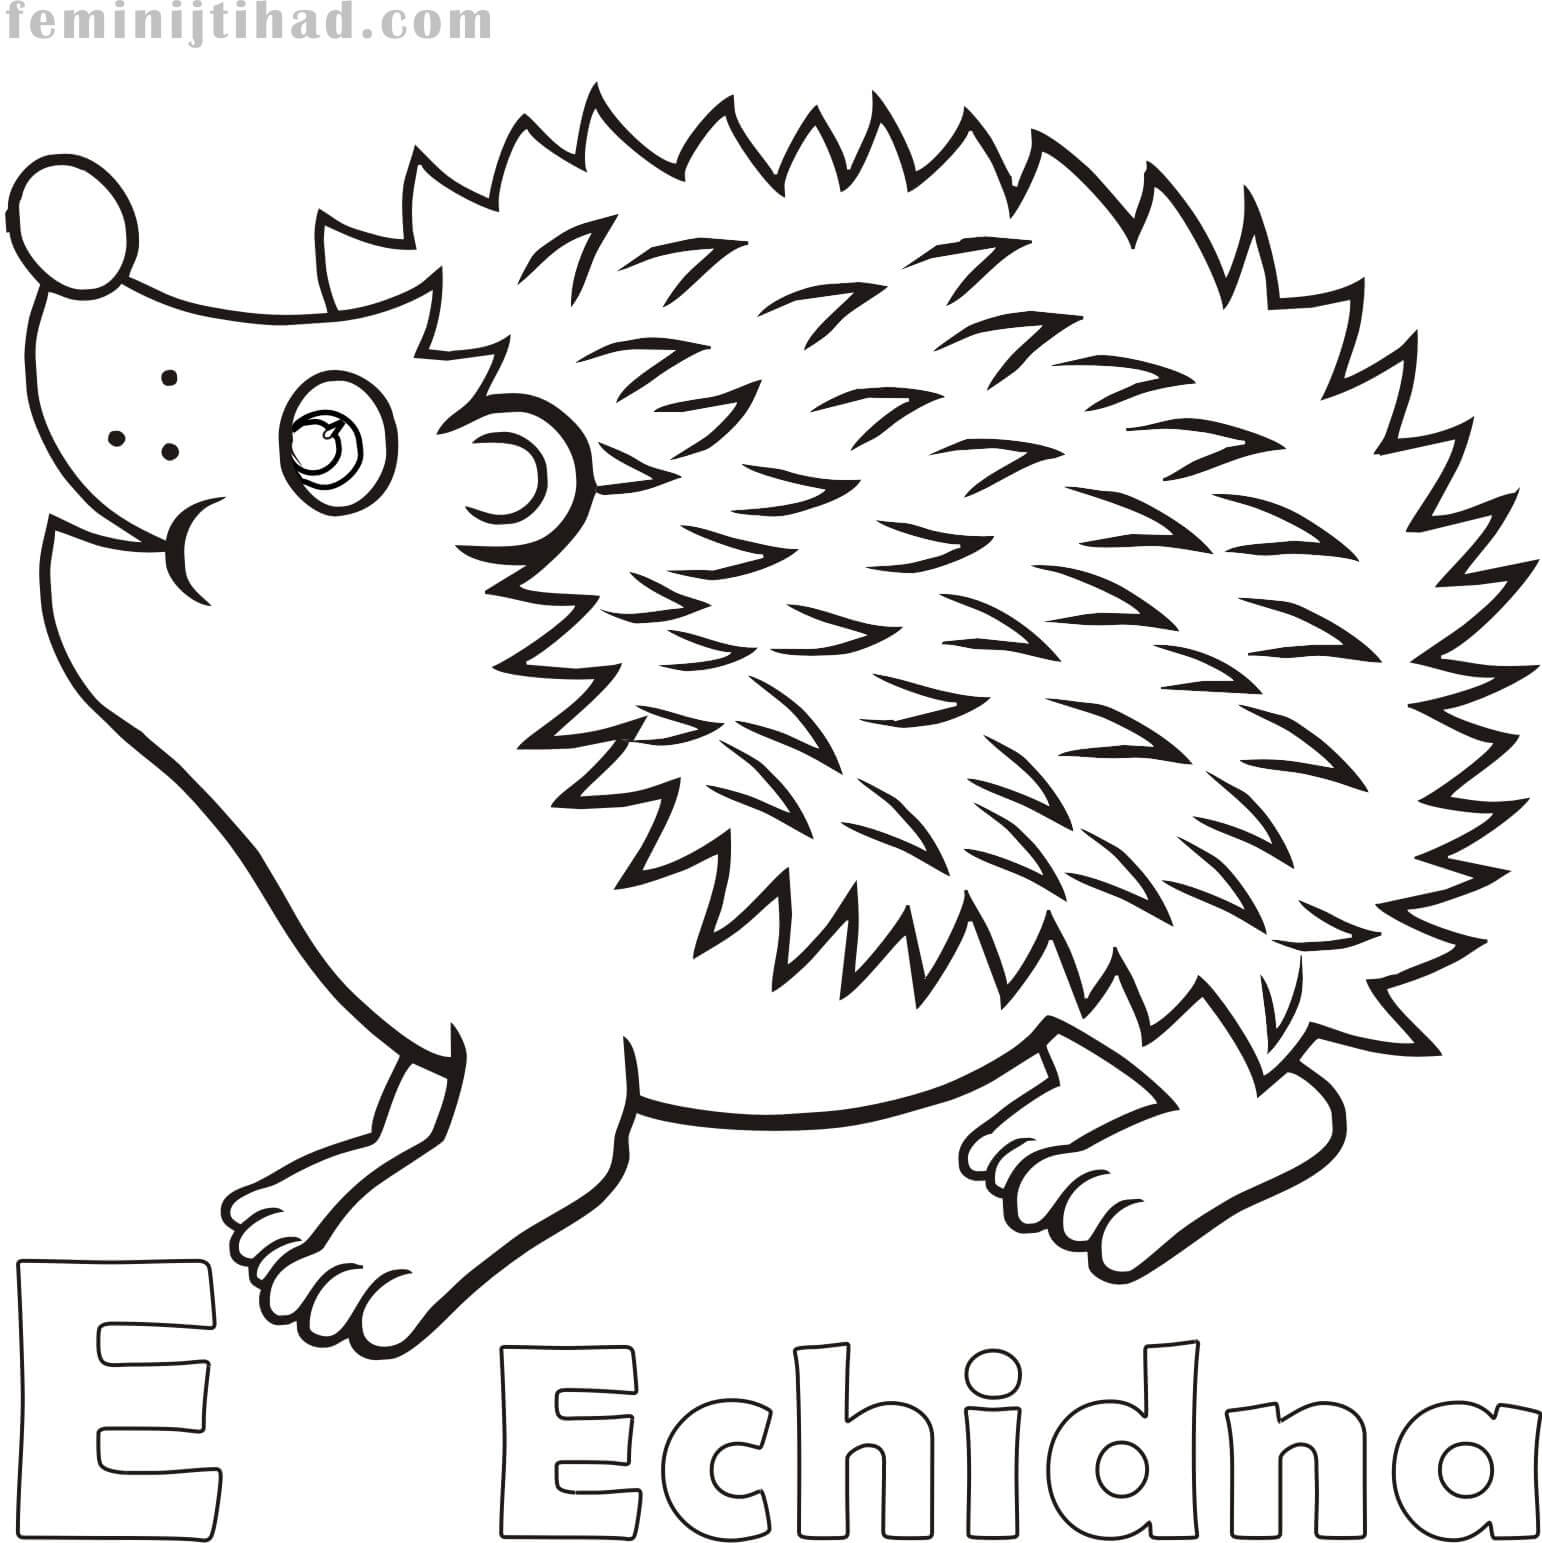 1542x1543 Free Echidna Coloring Pages Collection Coloring Pages For Kids